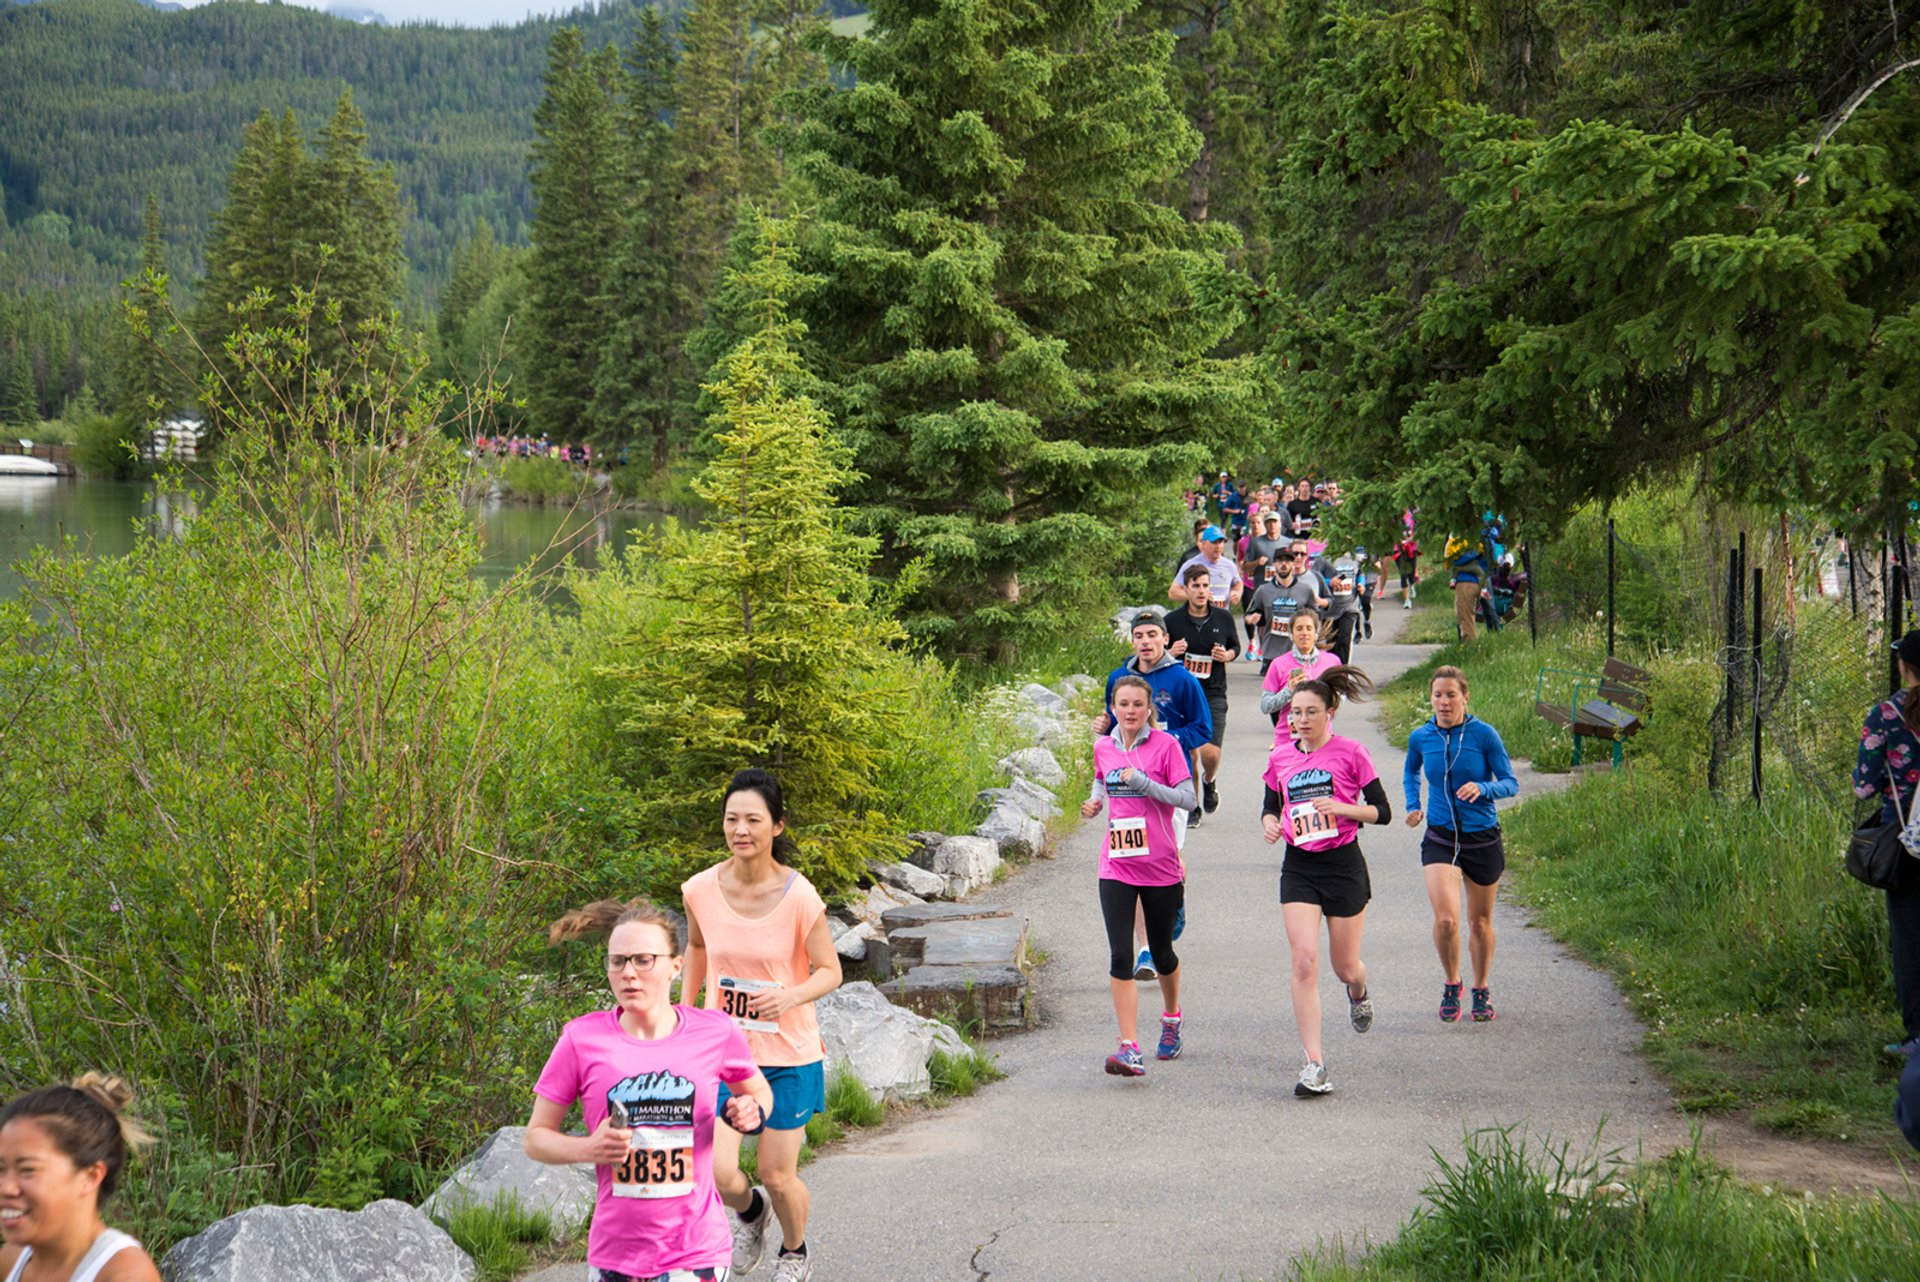 Best time for Banff Marathon in Banff & Jasper National Parks 2020